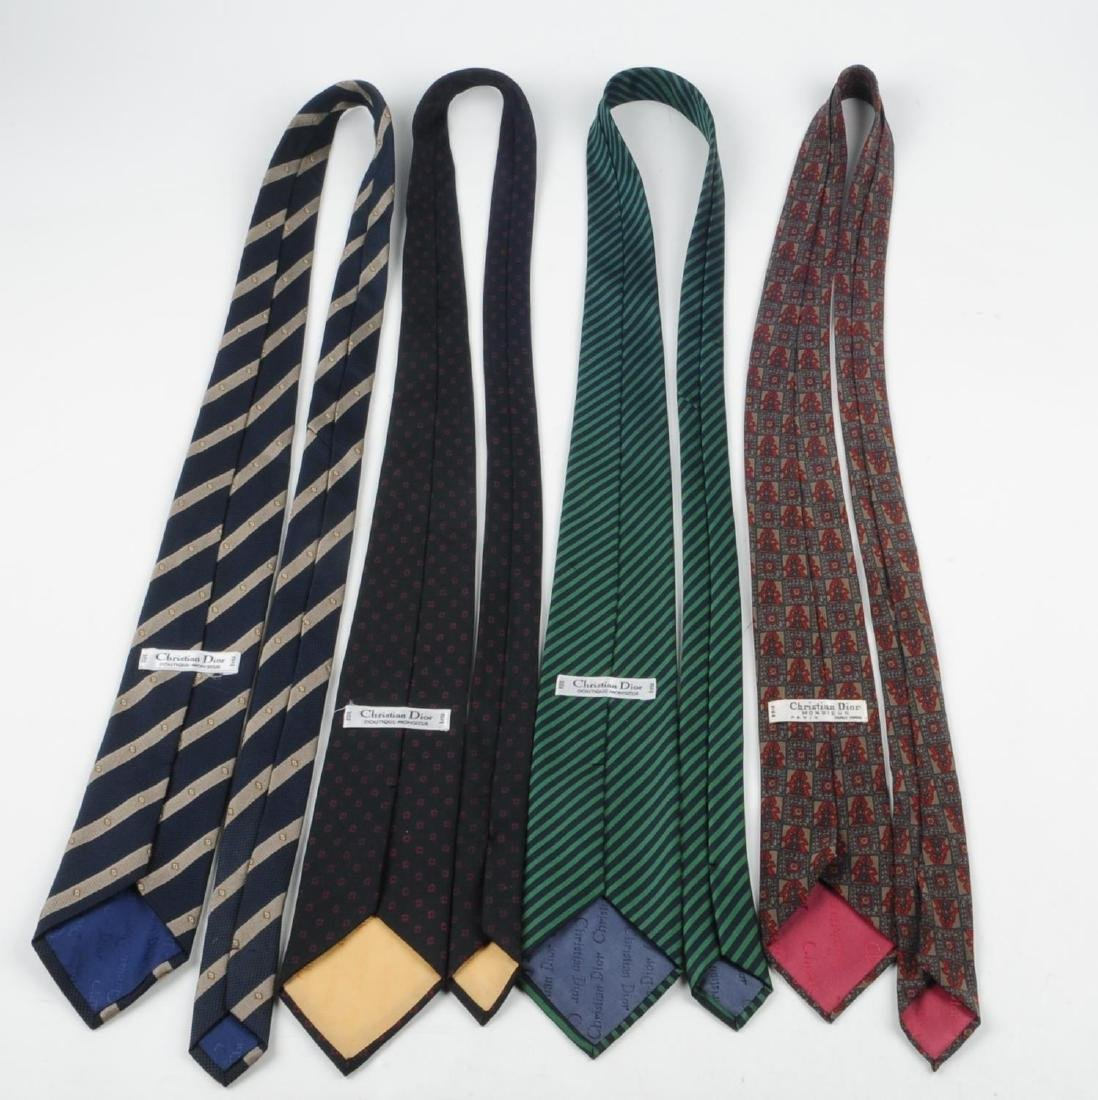 CHRISTIAN DIOR - six ties. To include three ties with - 2